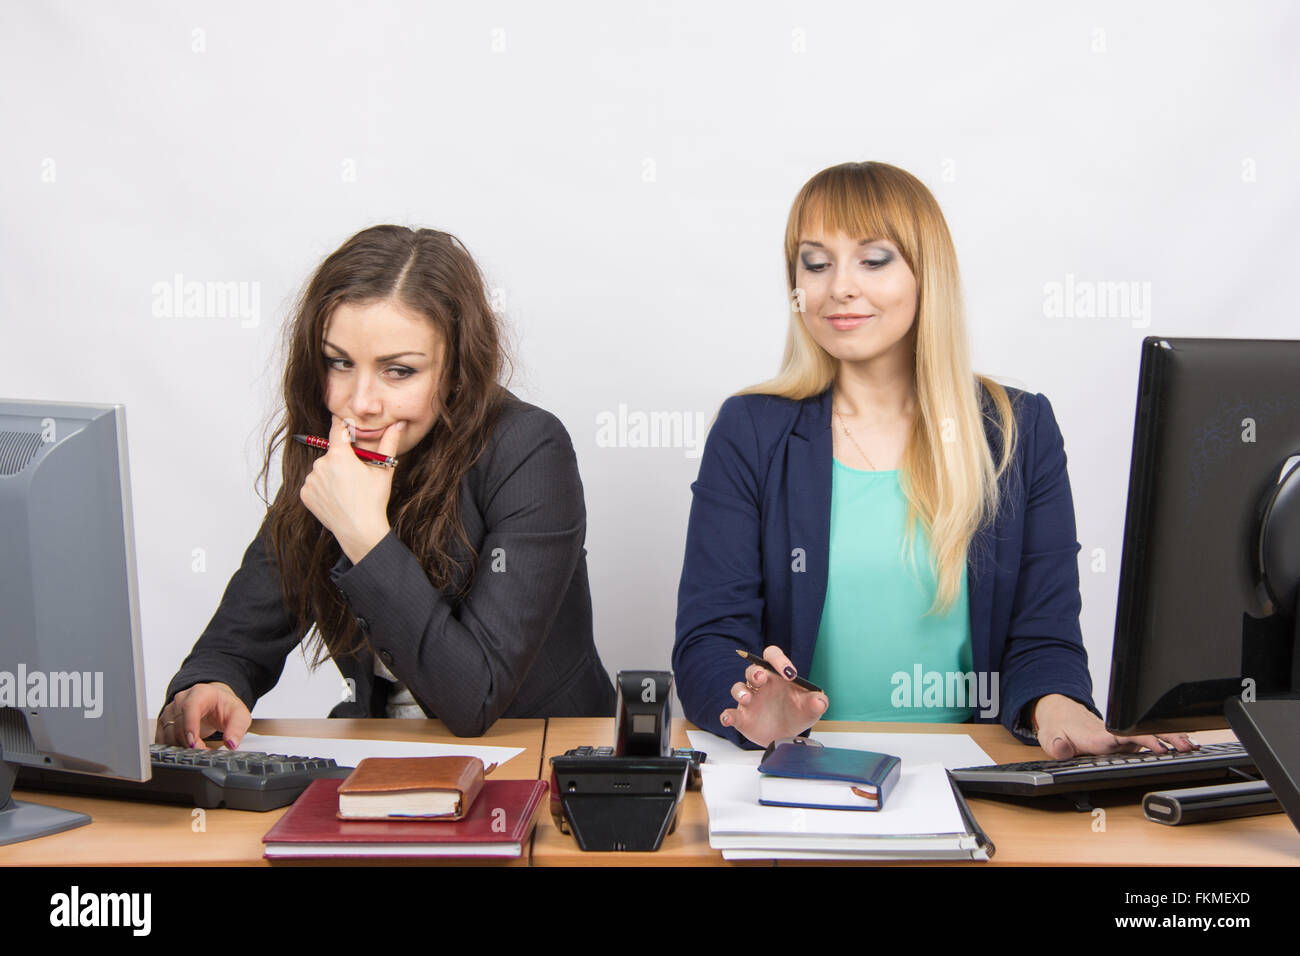 The situation in the office - the phone rang, the two collaborators looked at him - Stock Image